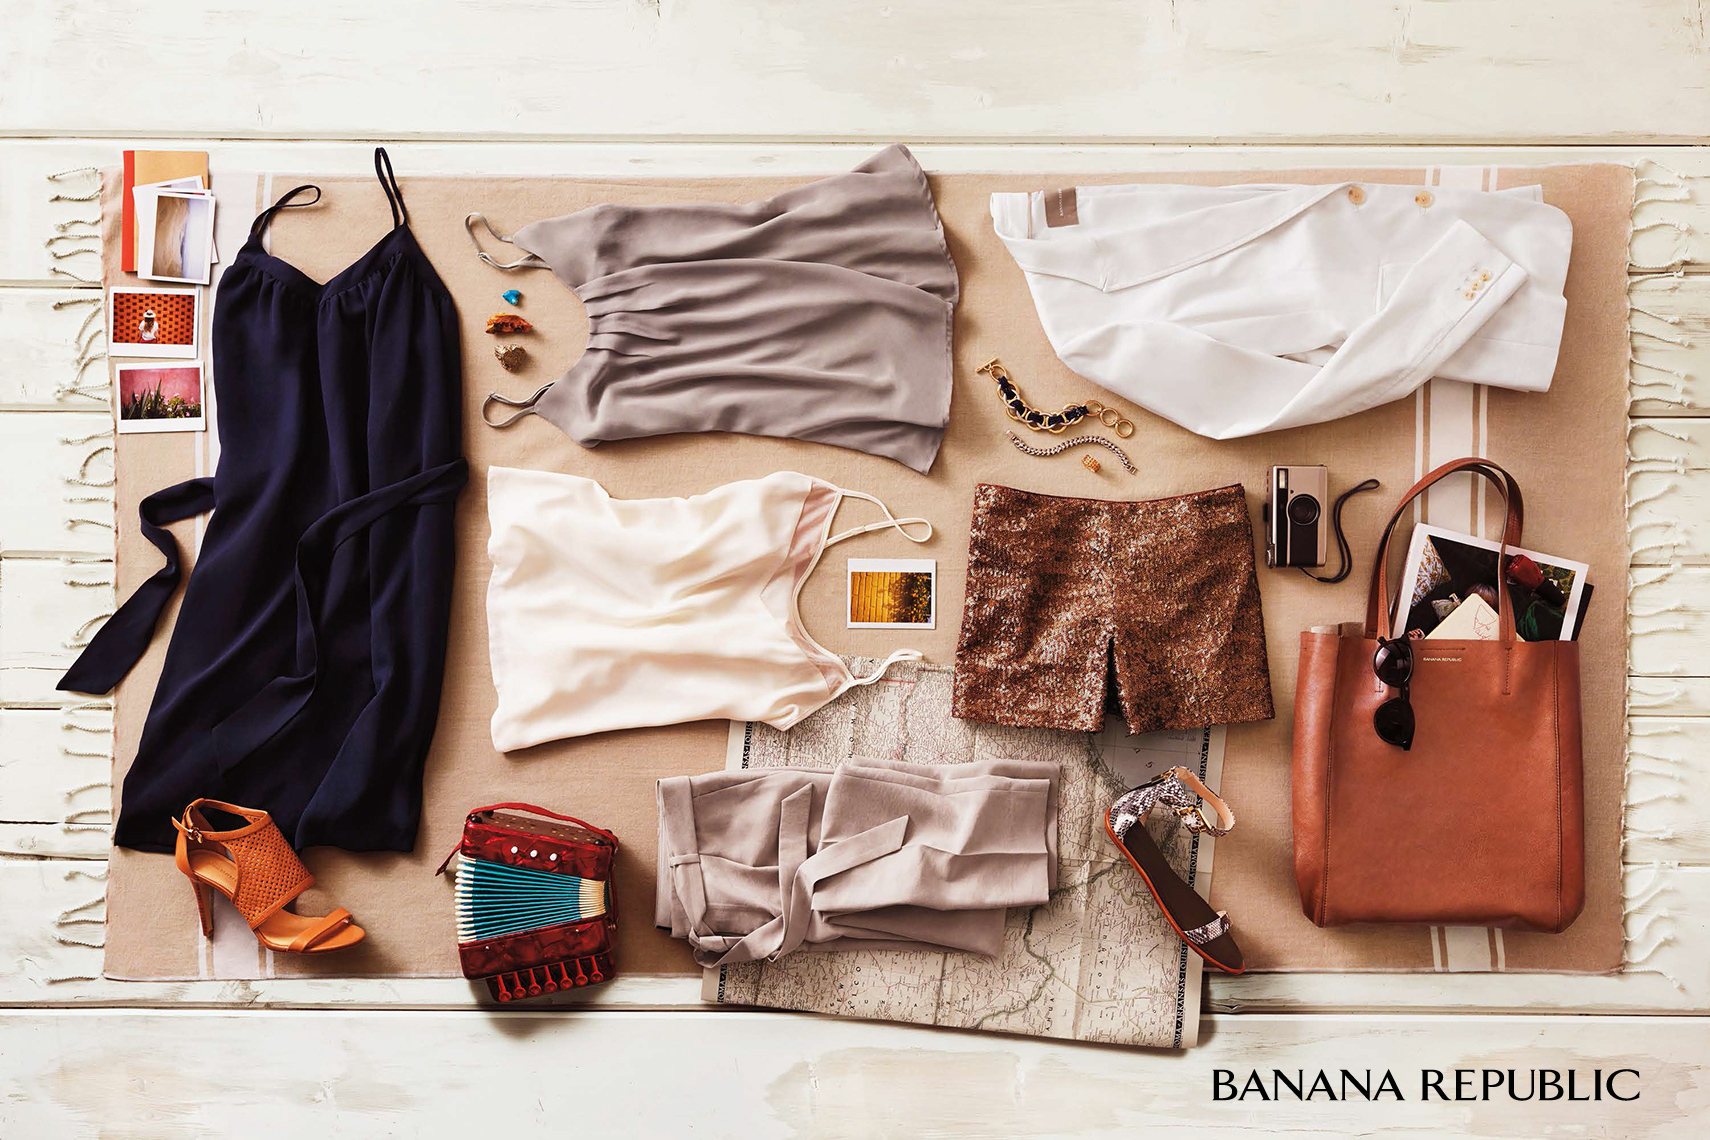 Advertising: Banana Republic